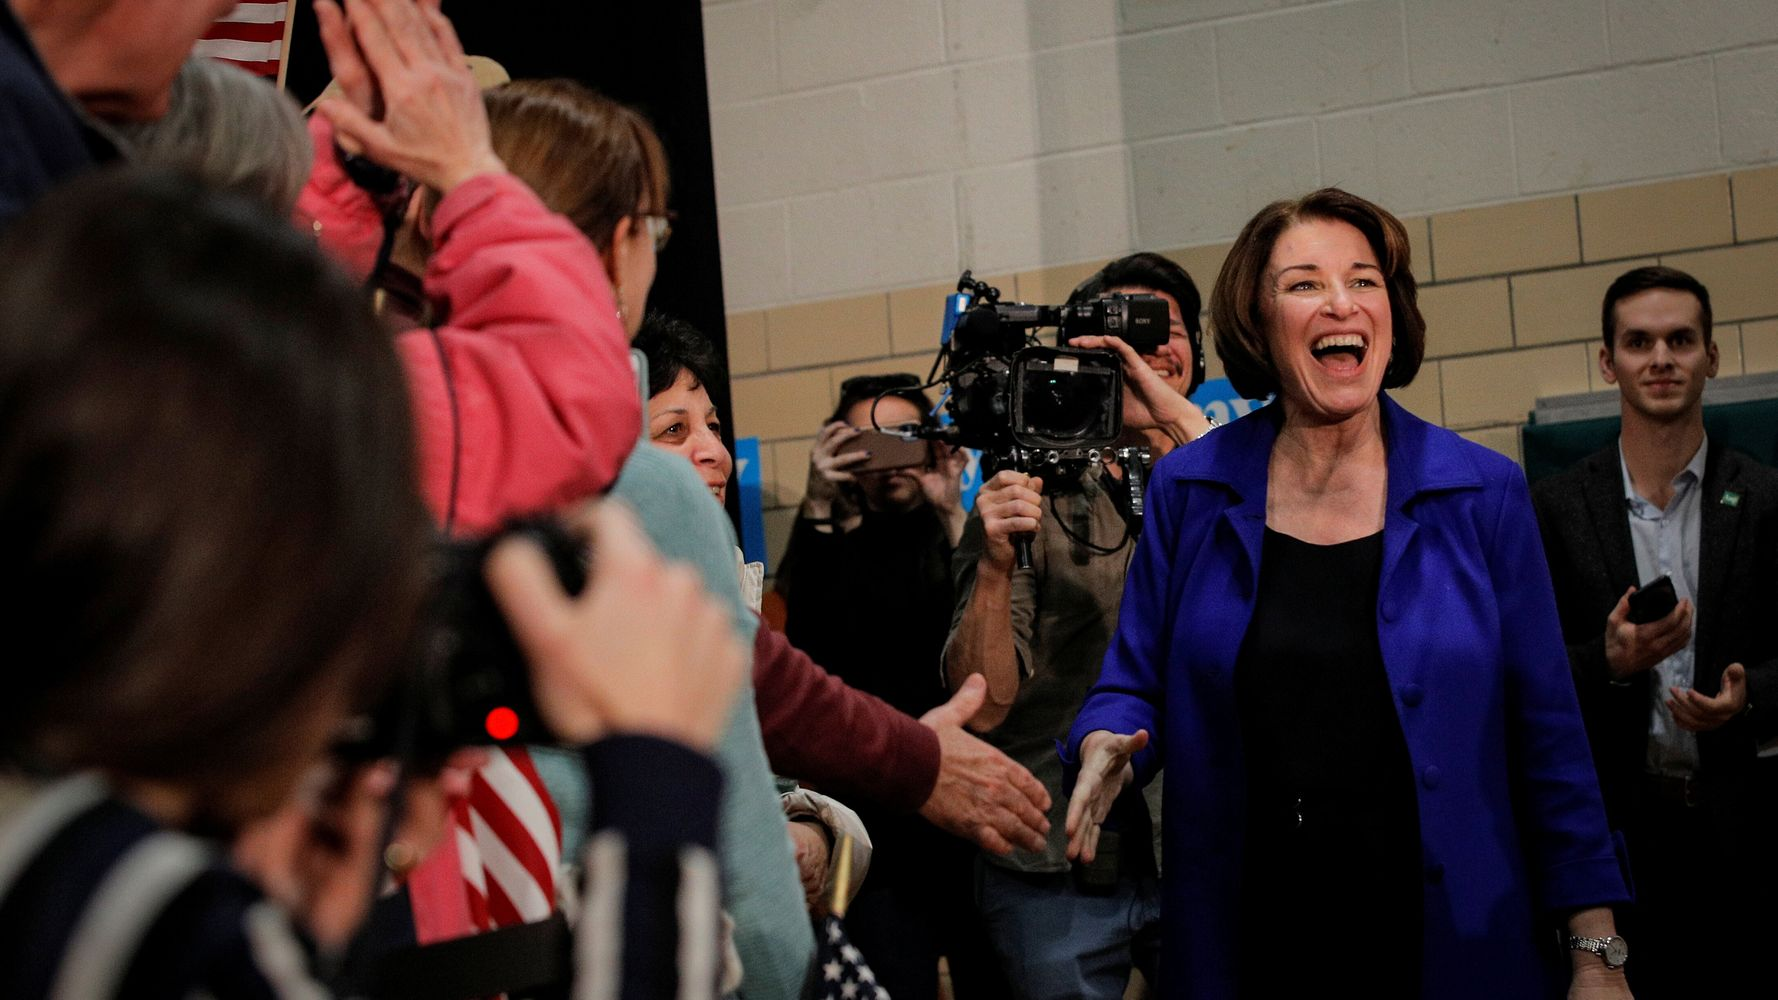 Westlake Legal Group 5e422135210000ca0116dce0 The Long-Predicted Klobuchar Surge May Finally Be Happening